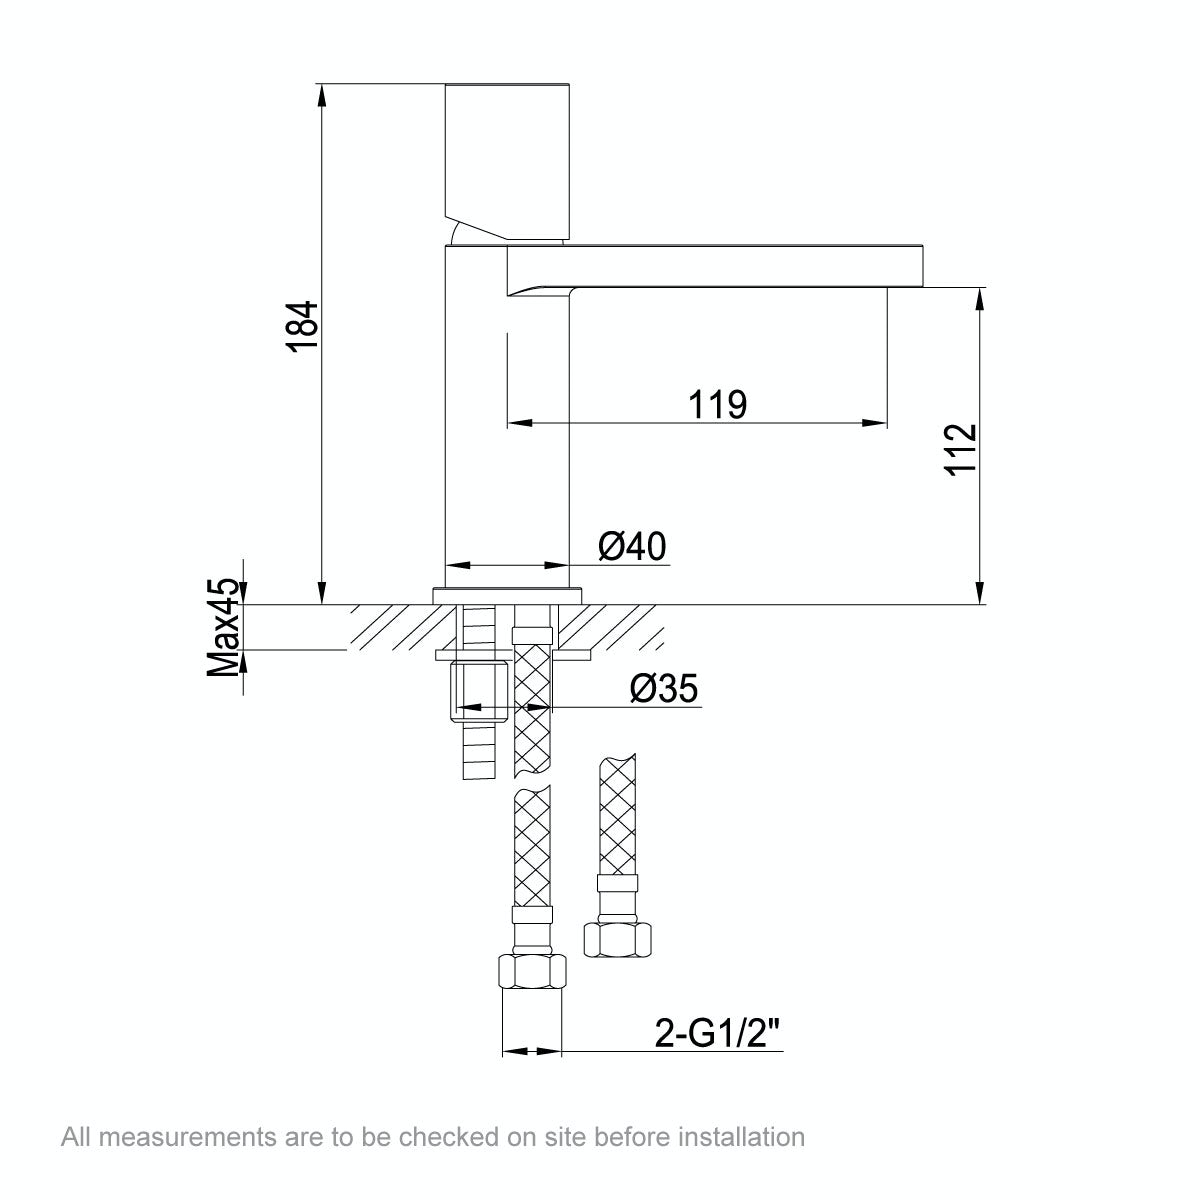 Dimensions for Mode Doshi basin mixer tap